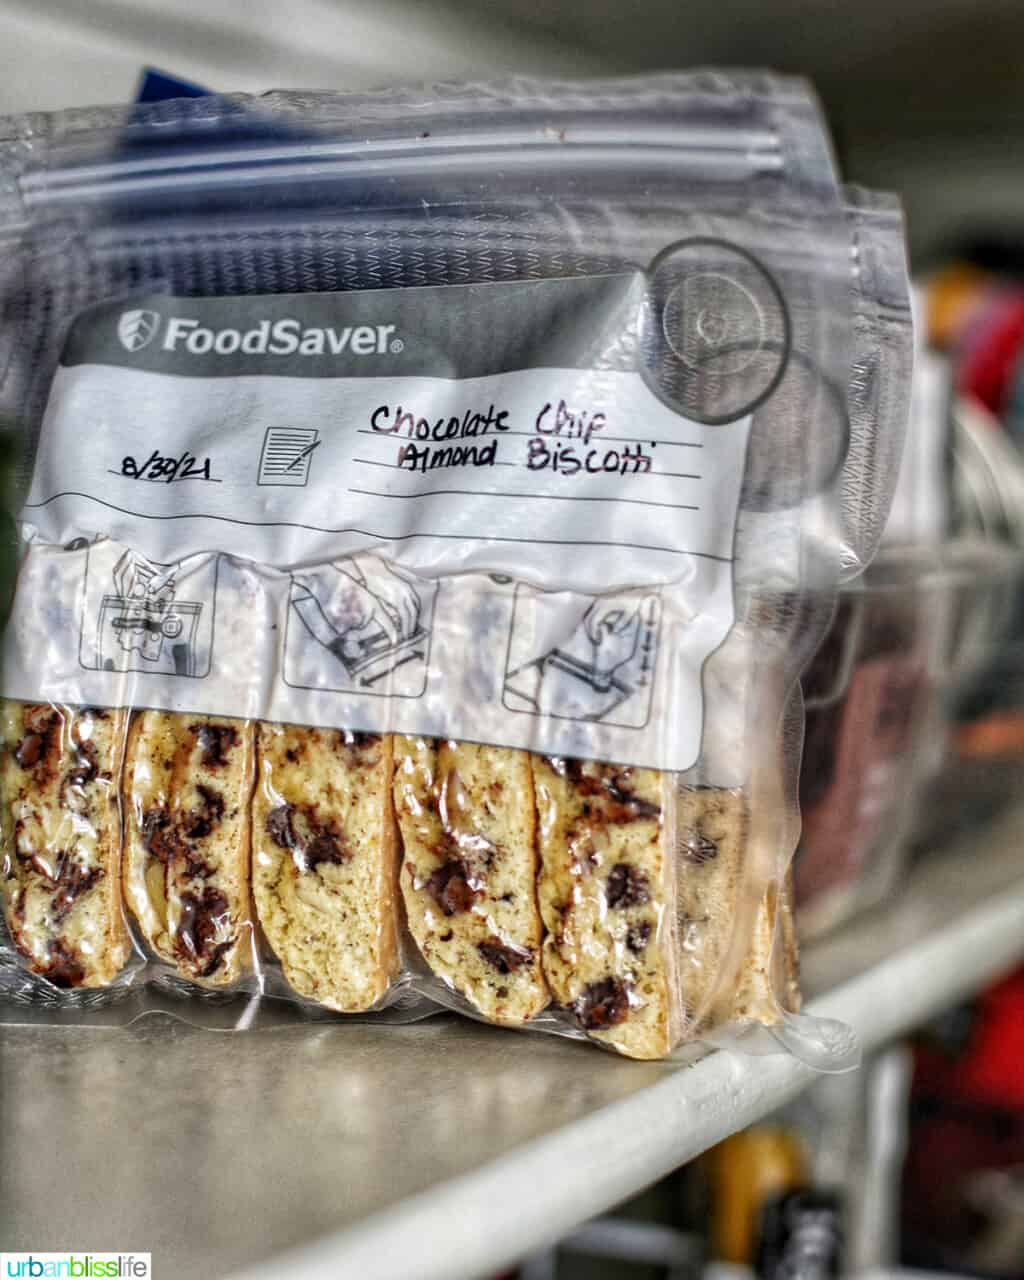 biscotti in bags in the pantry